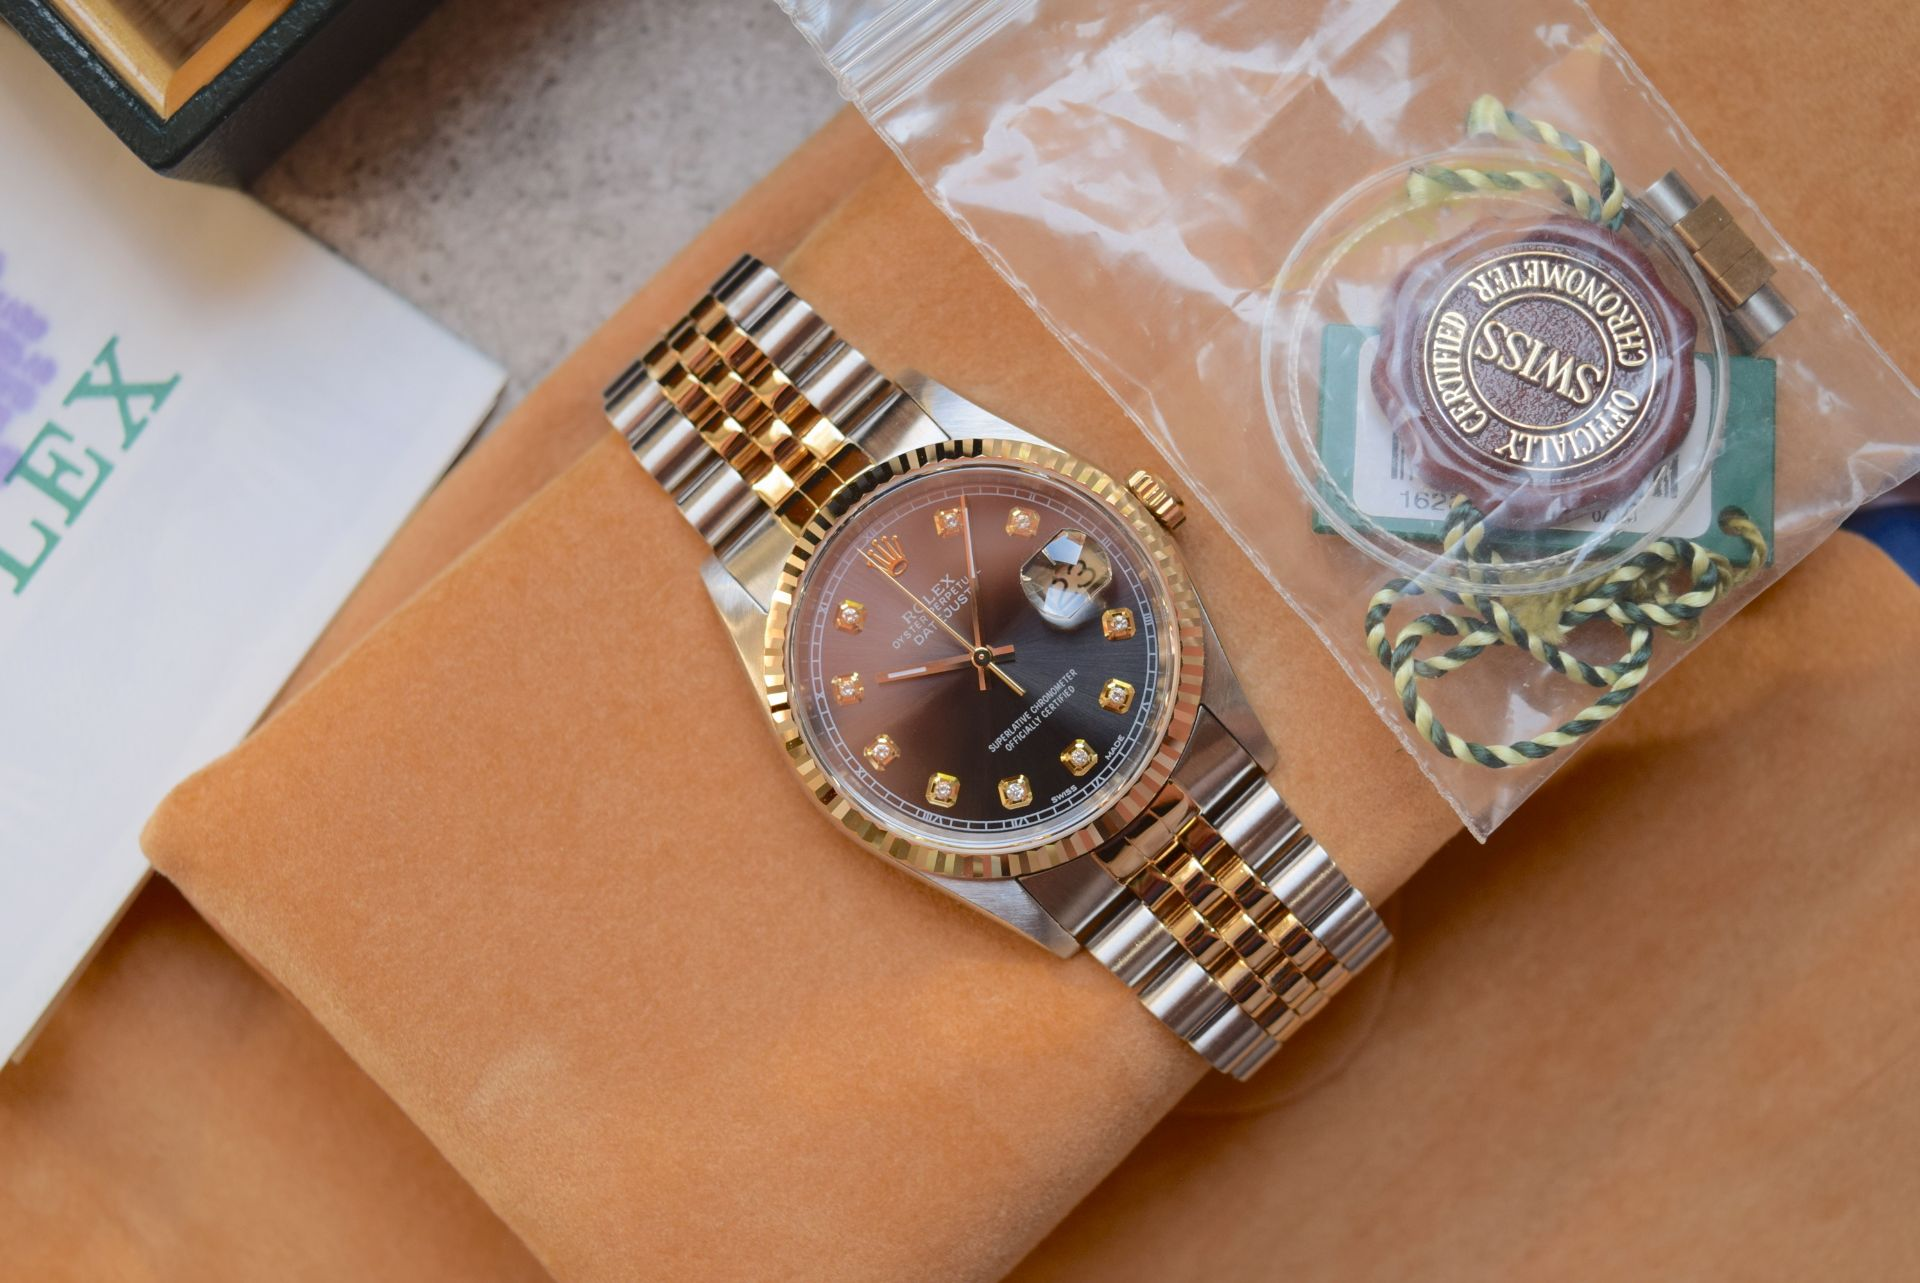 18CT GOLD/ STEEL ROLEX DATEJUST - 36MM, MENS (COMPLETE SET INC BOX, PAPERS, TAGS ETC) - Image 3 of 25